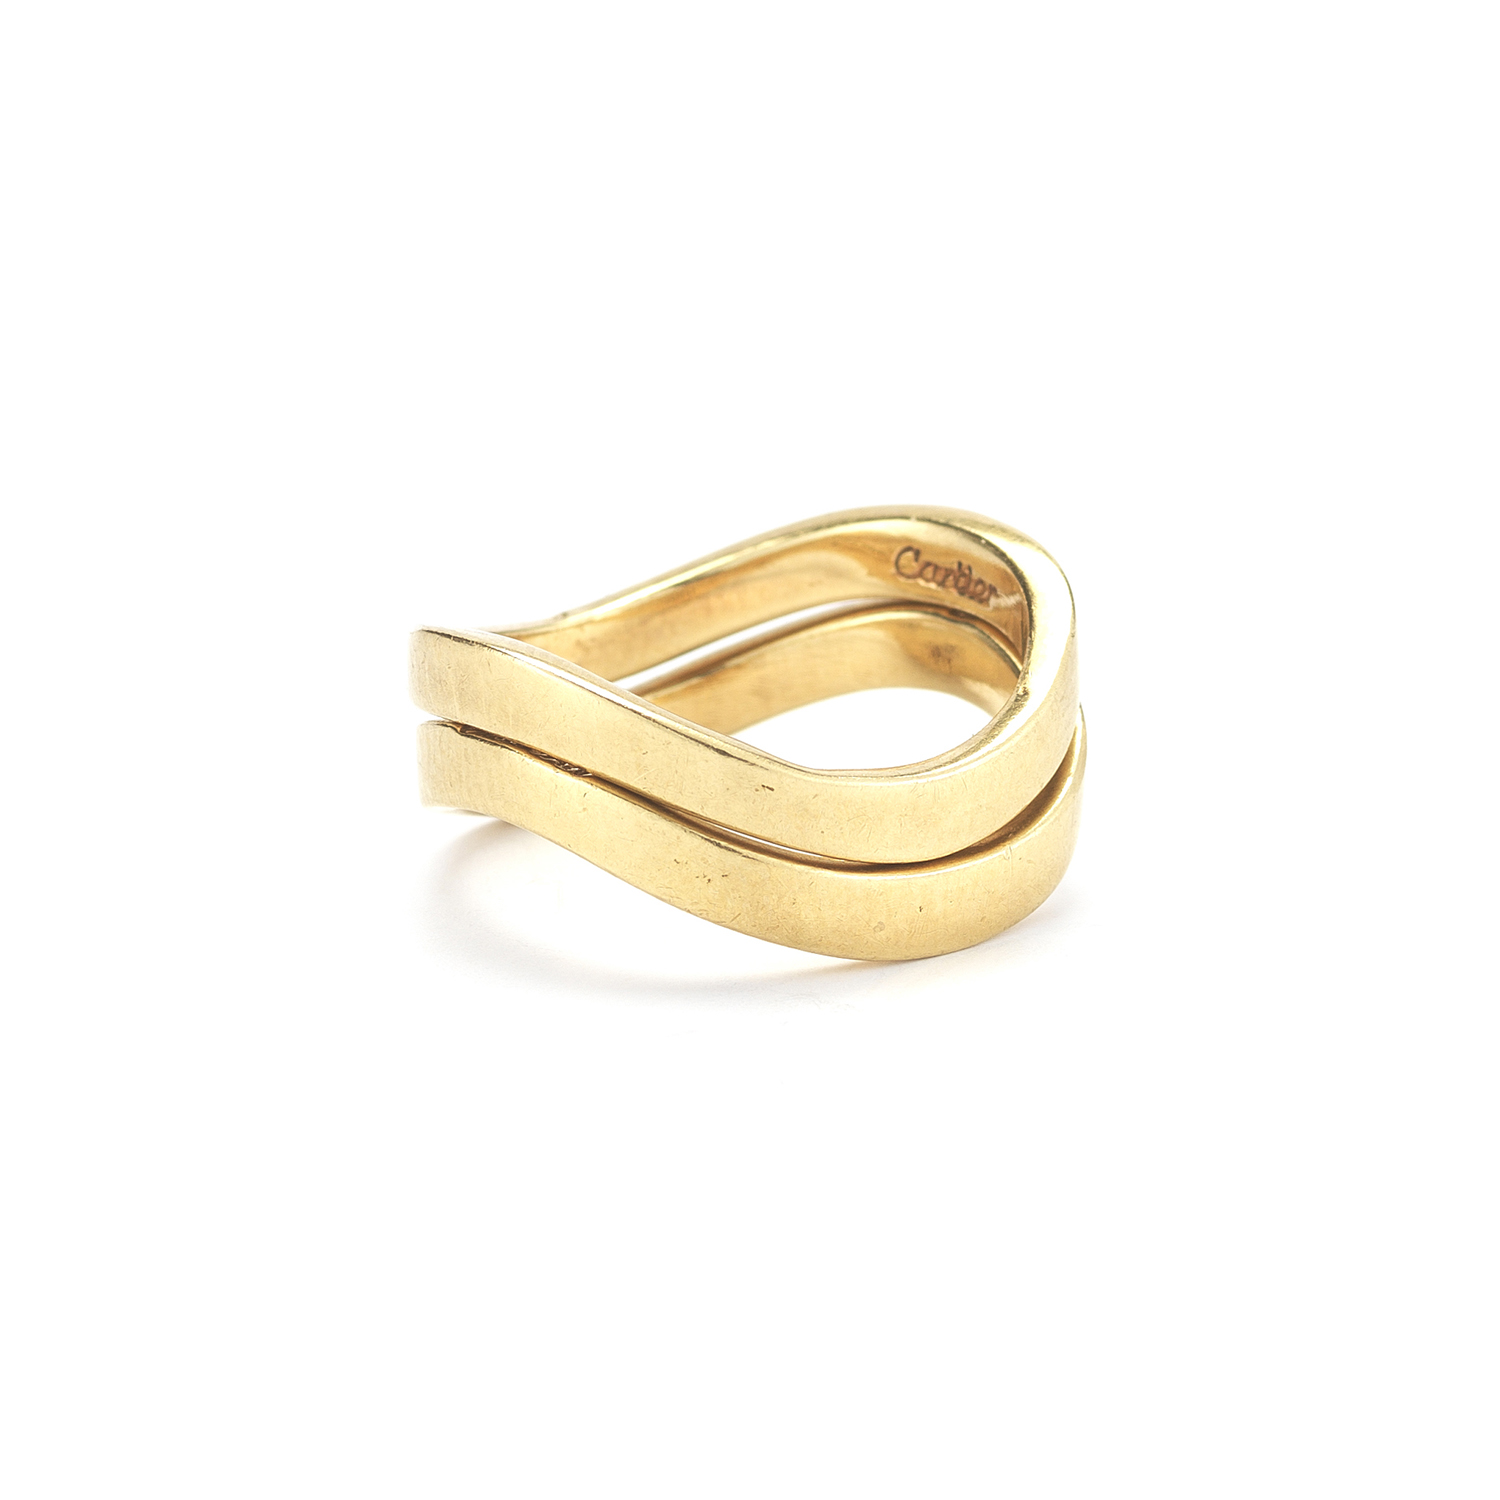 Cartier Dinh Van 18K Yellow Gold Stackable Rings, Serial FL39536